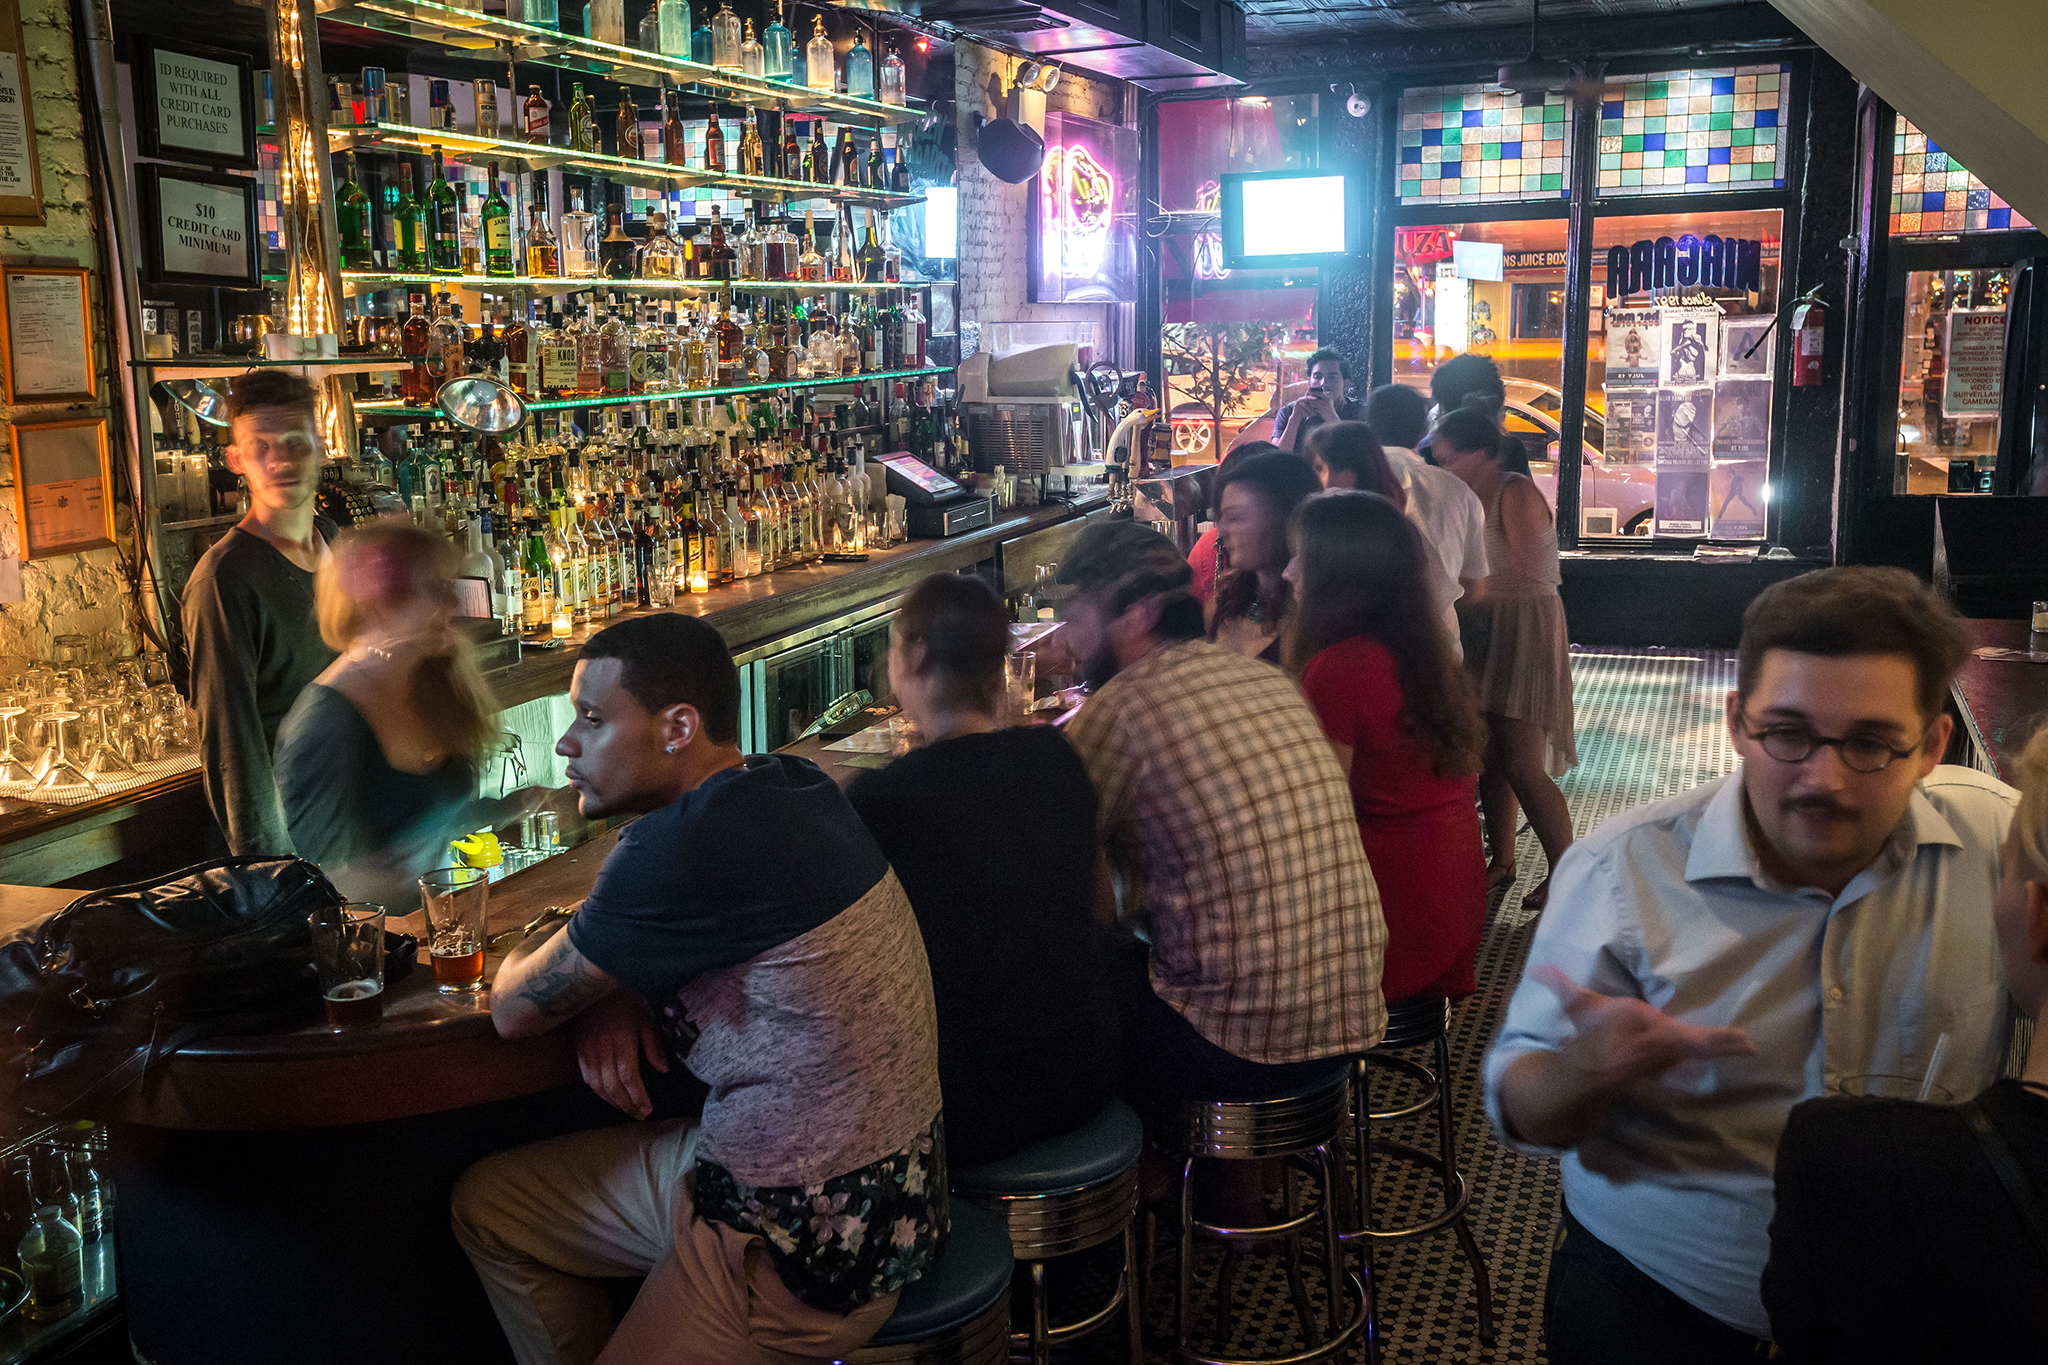 Best bars to hook up in nyc